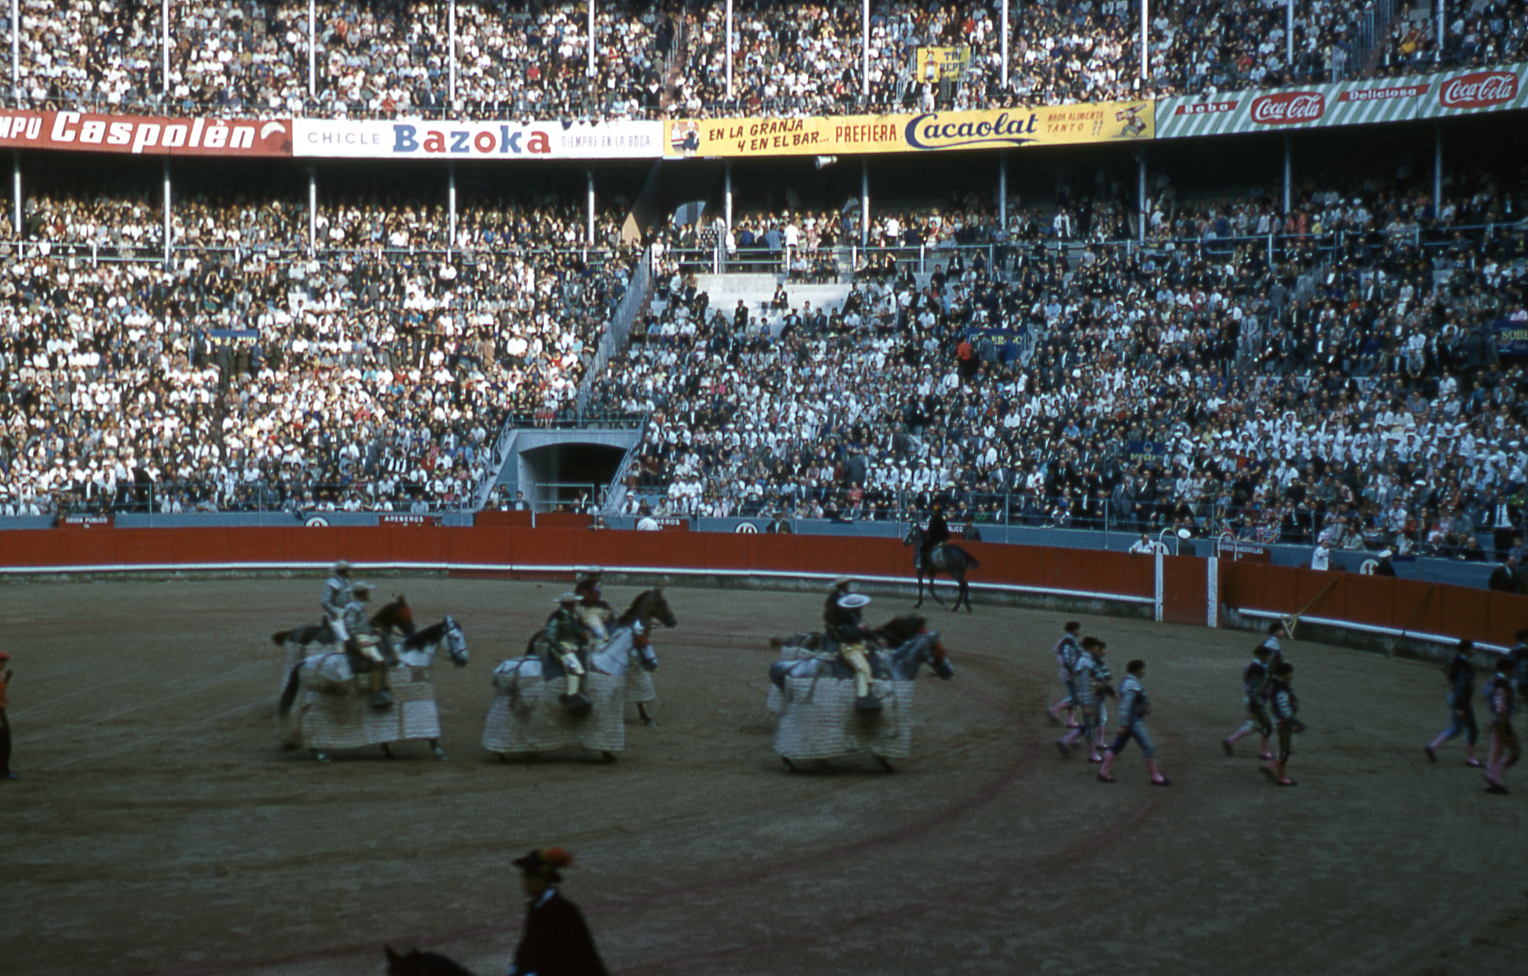 20-jun60-barcelona-bullfights